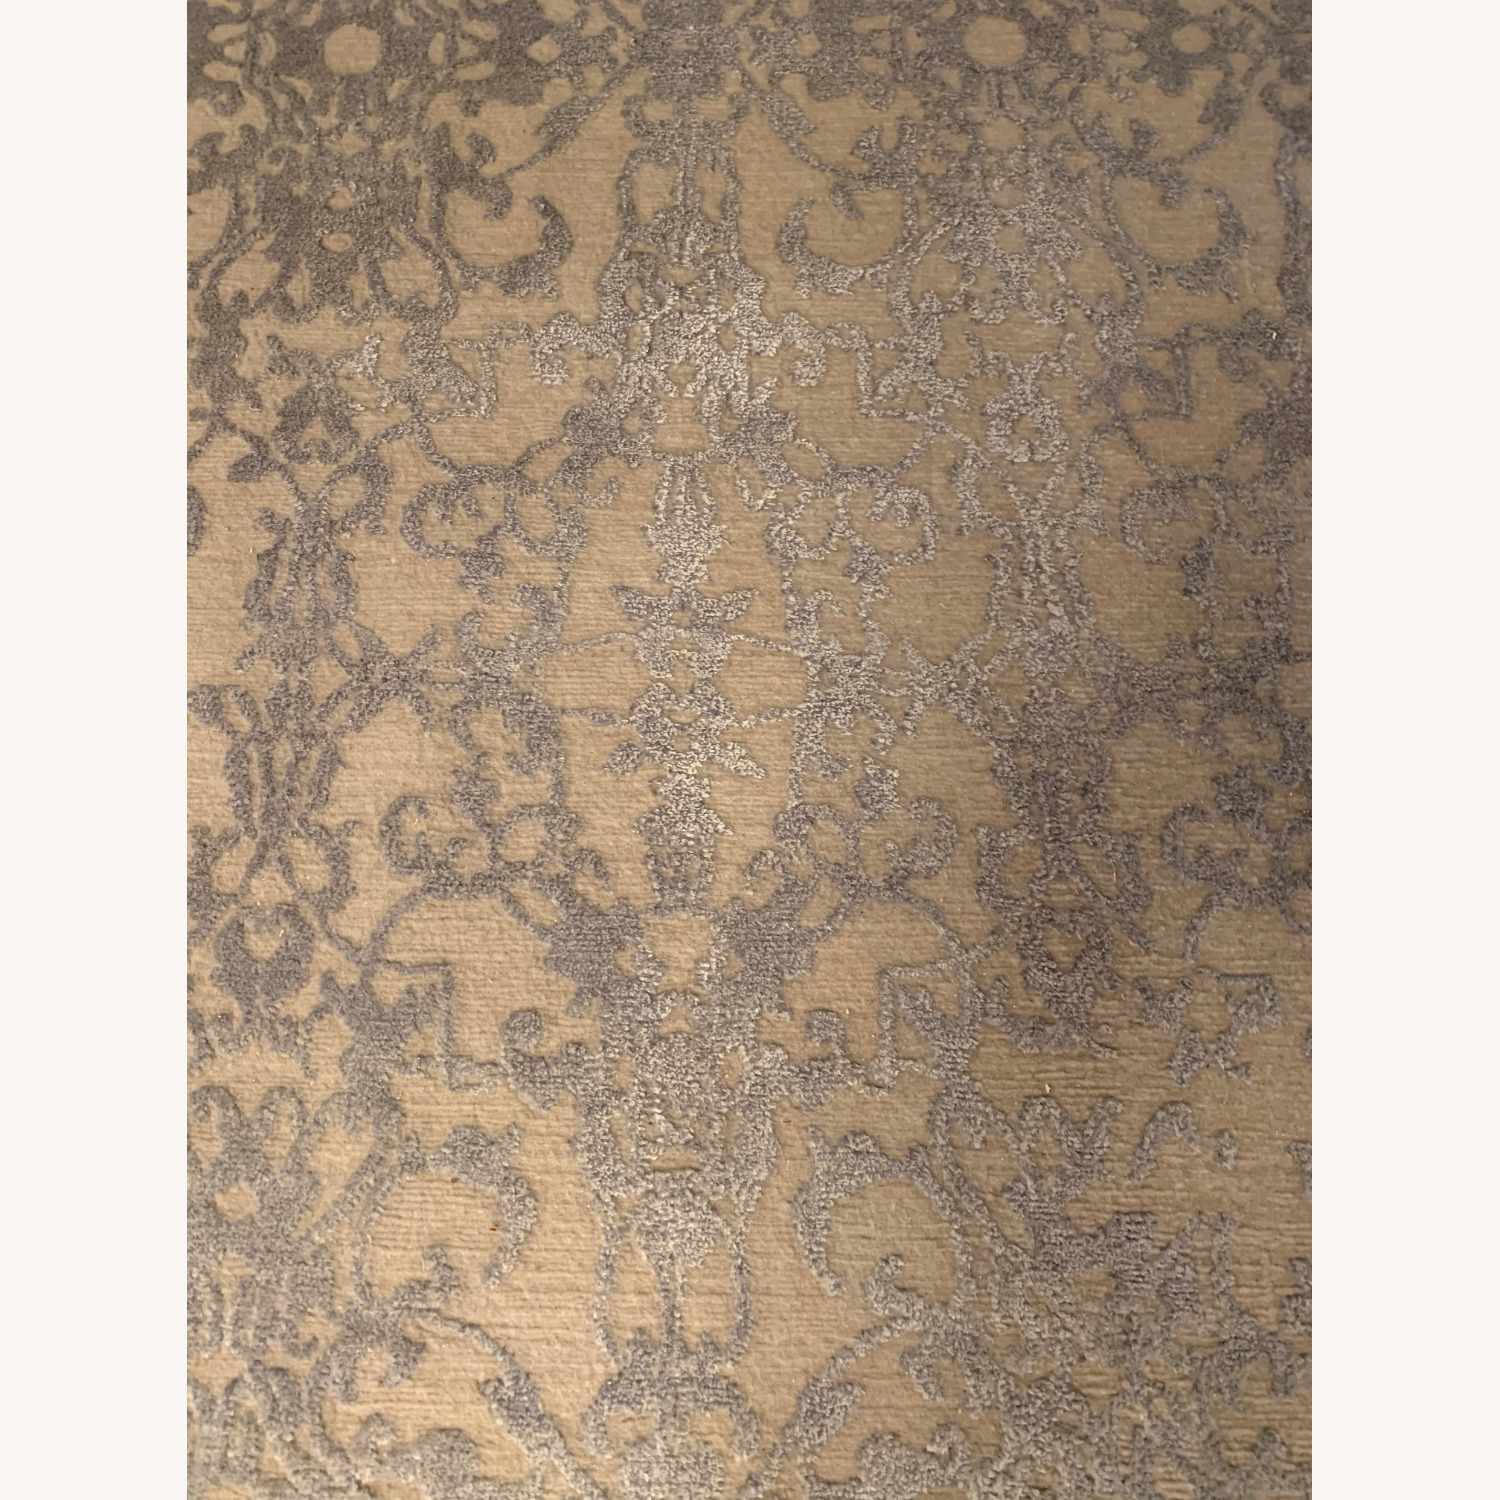 Custom Antique Style Distressed Rug - image-3